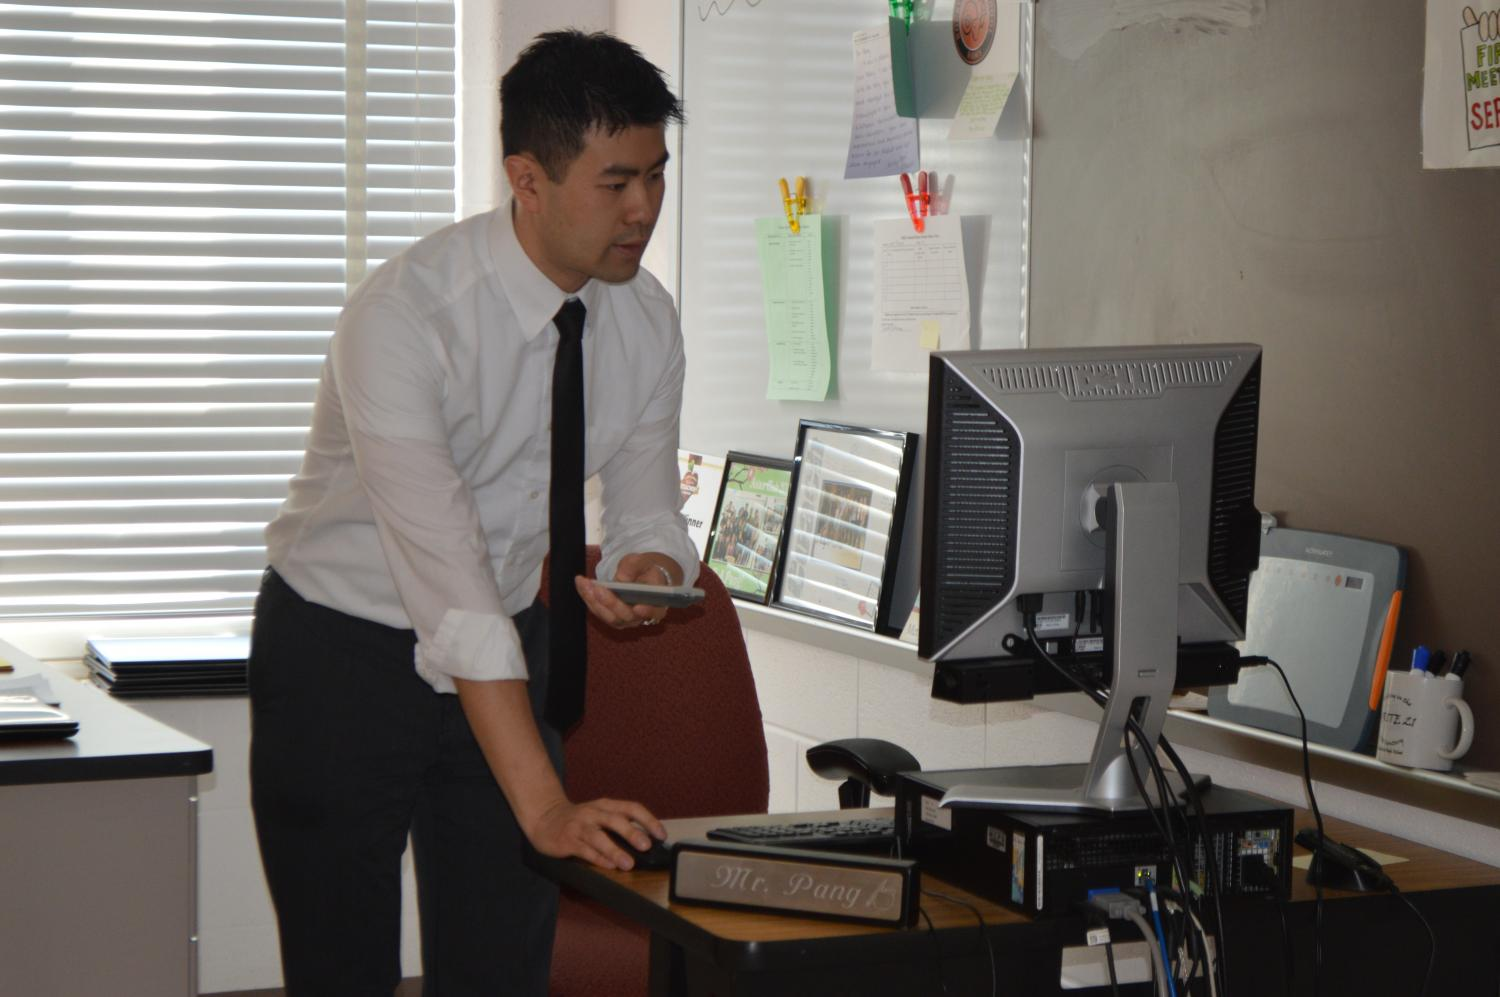 Washington Post 2017 Teacher of the Year Sean Pang gets ready for instruction time at his desk. He was out of 21 other finalists and has been a teacher at RHS for six years.